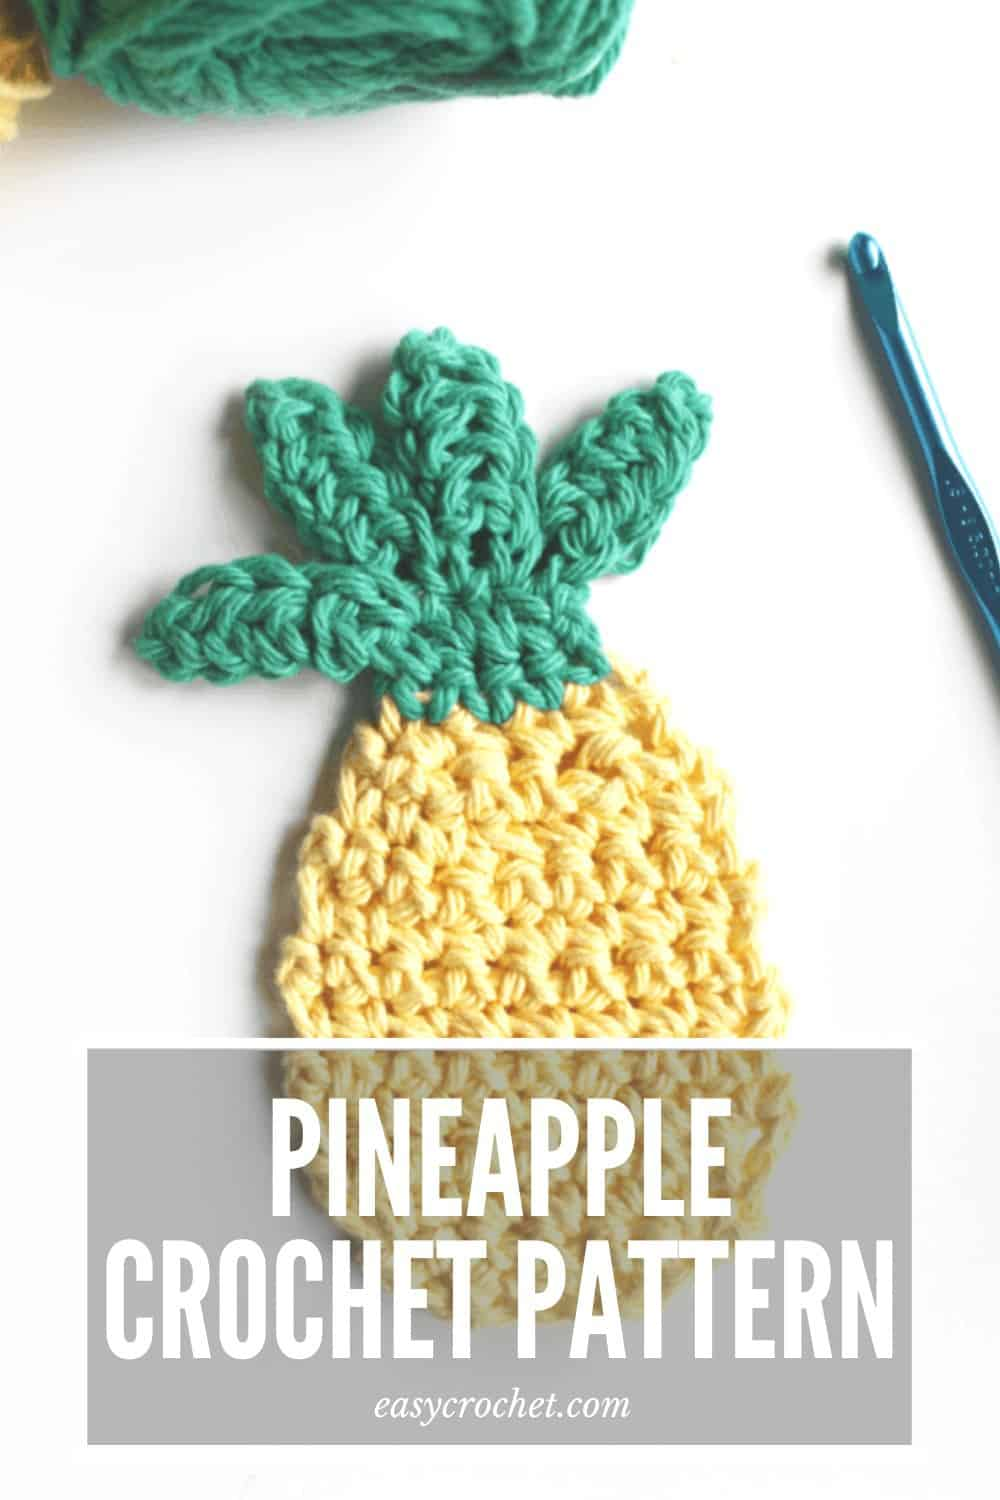 Free Pineapple Crochet Pattern by Easy Crochet - great for appliques or toy food! via @easycrochetcom